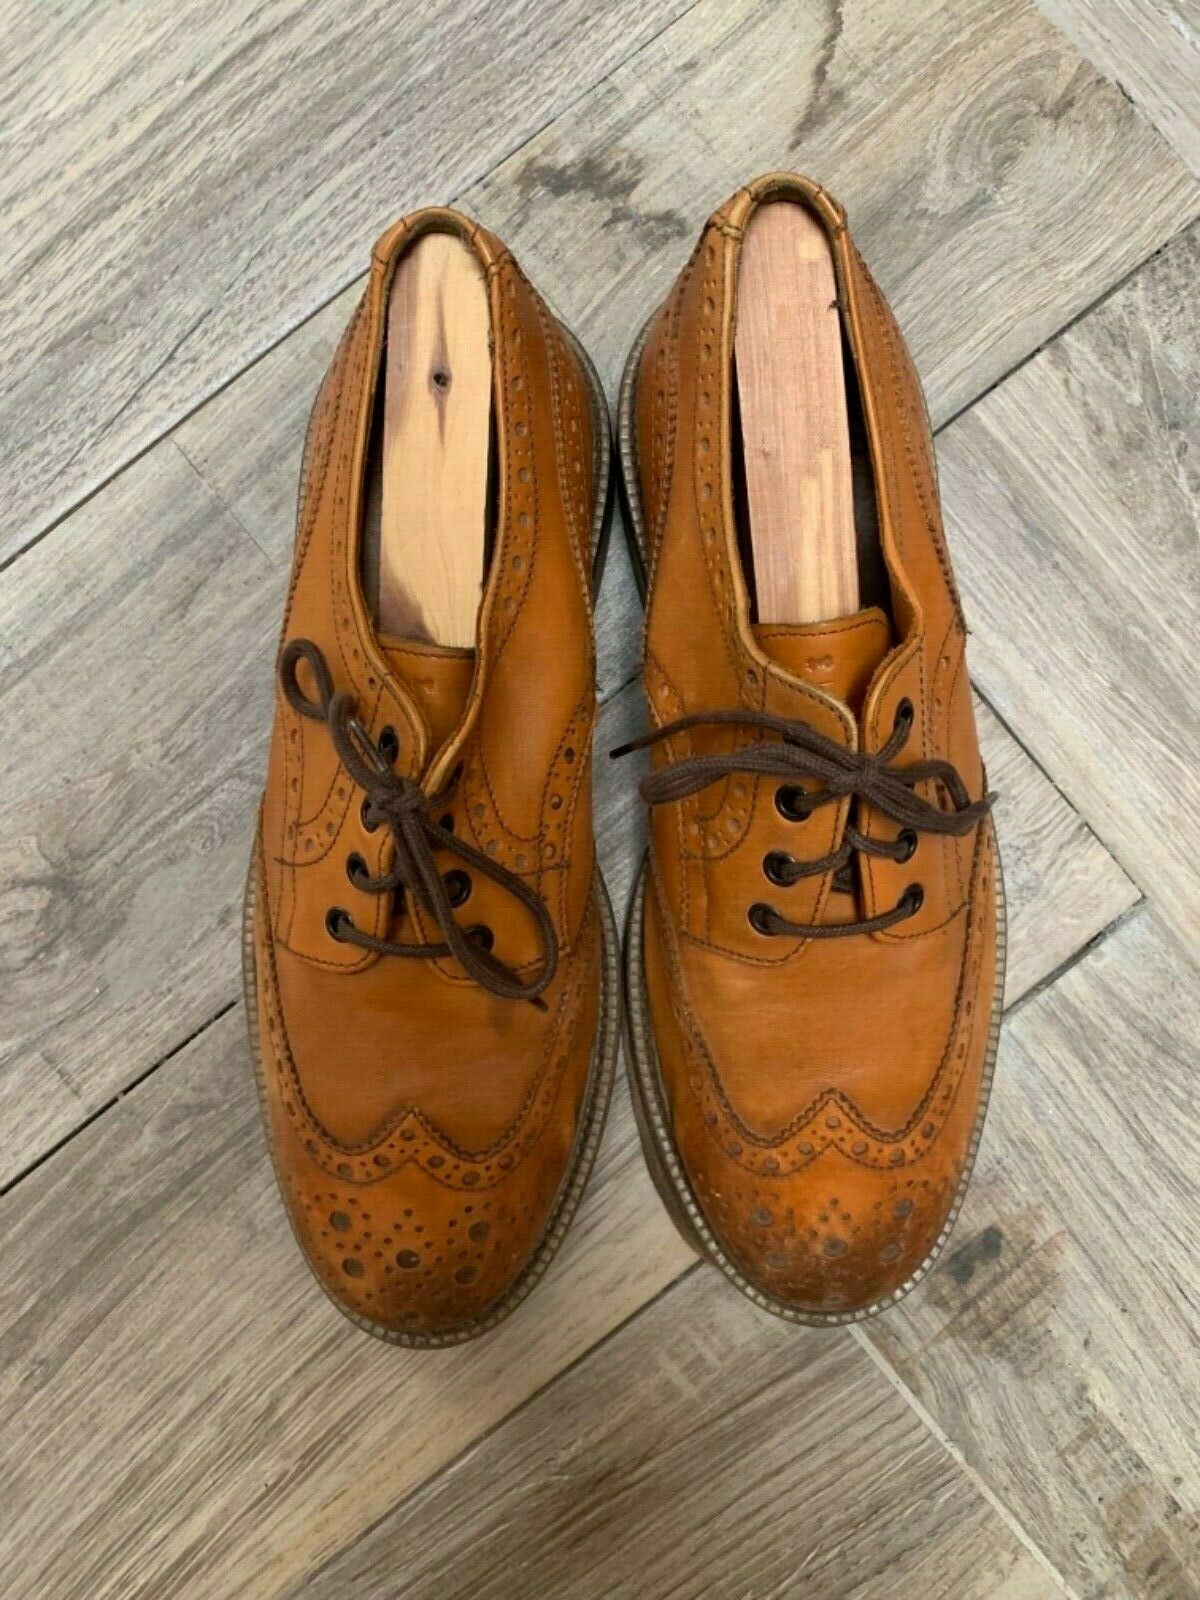 Aldo Mr. B men's brown oxford shoes size 42 US 9